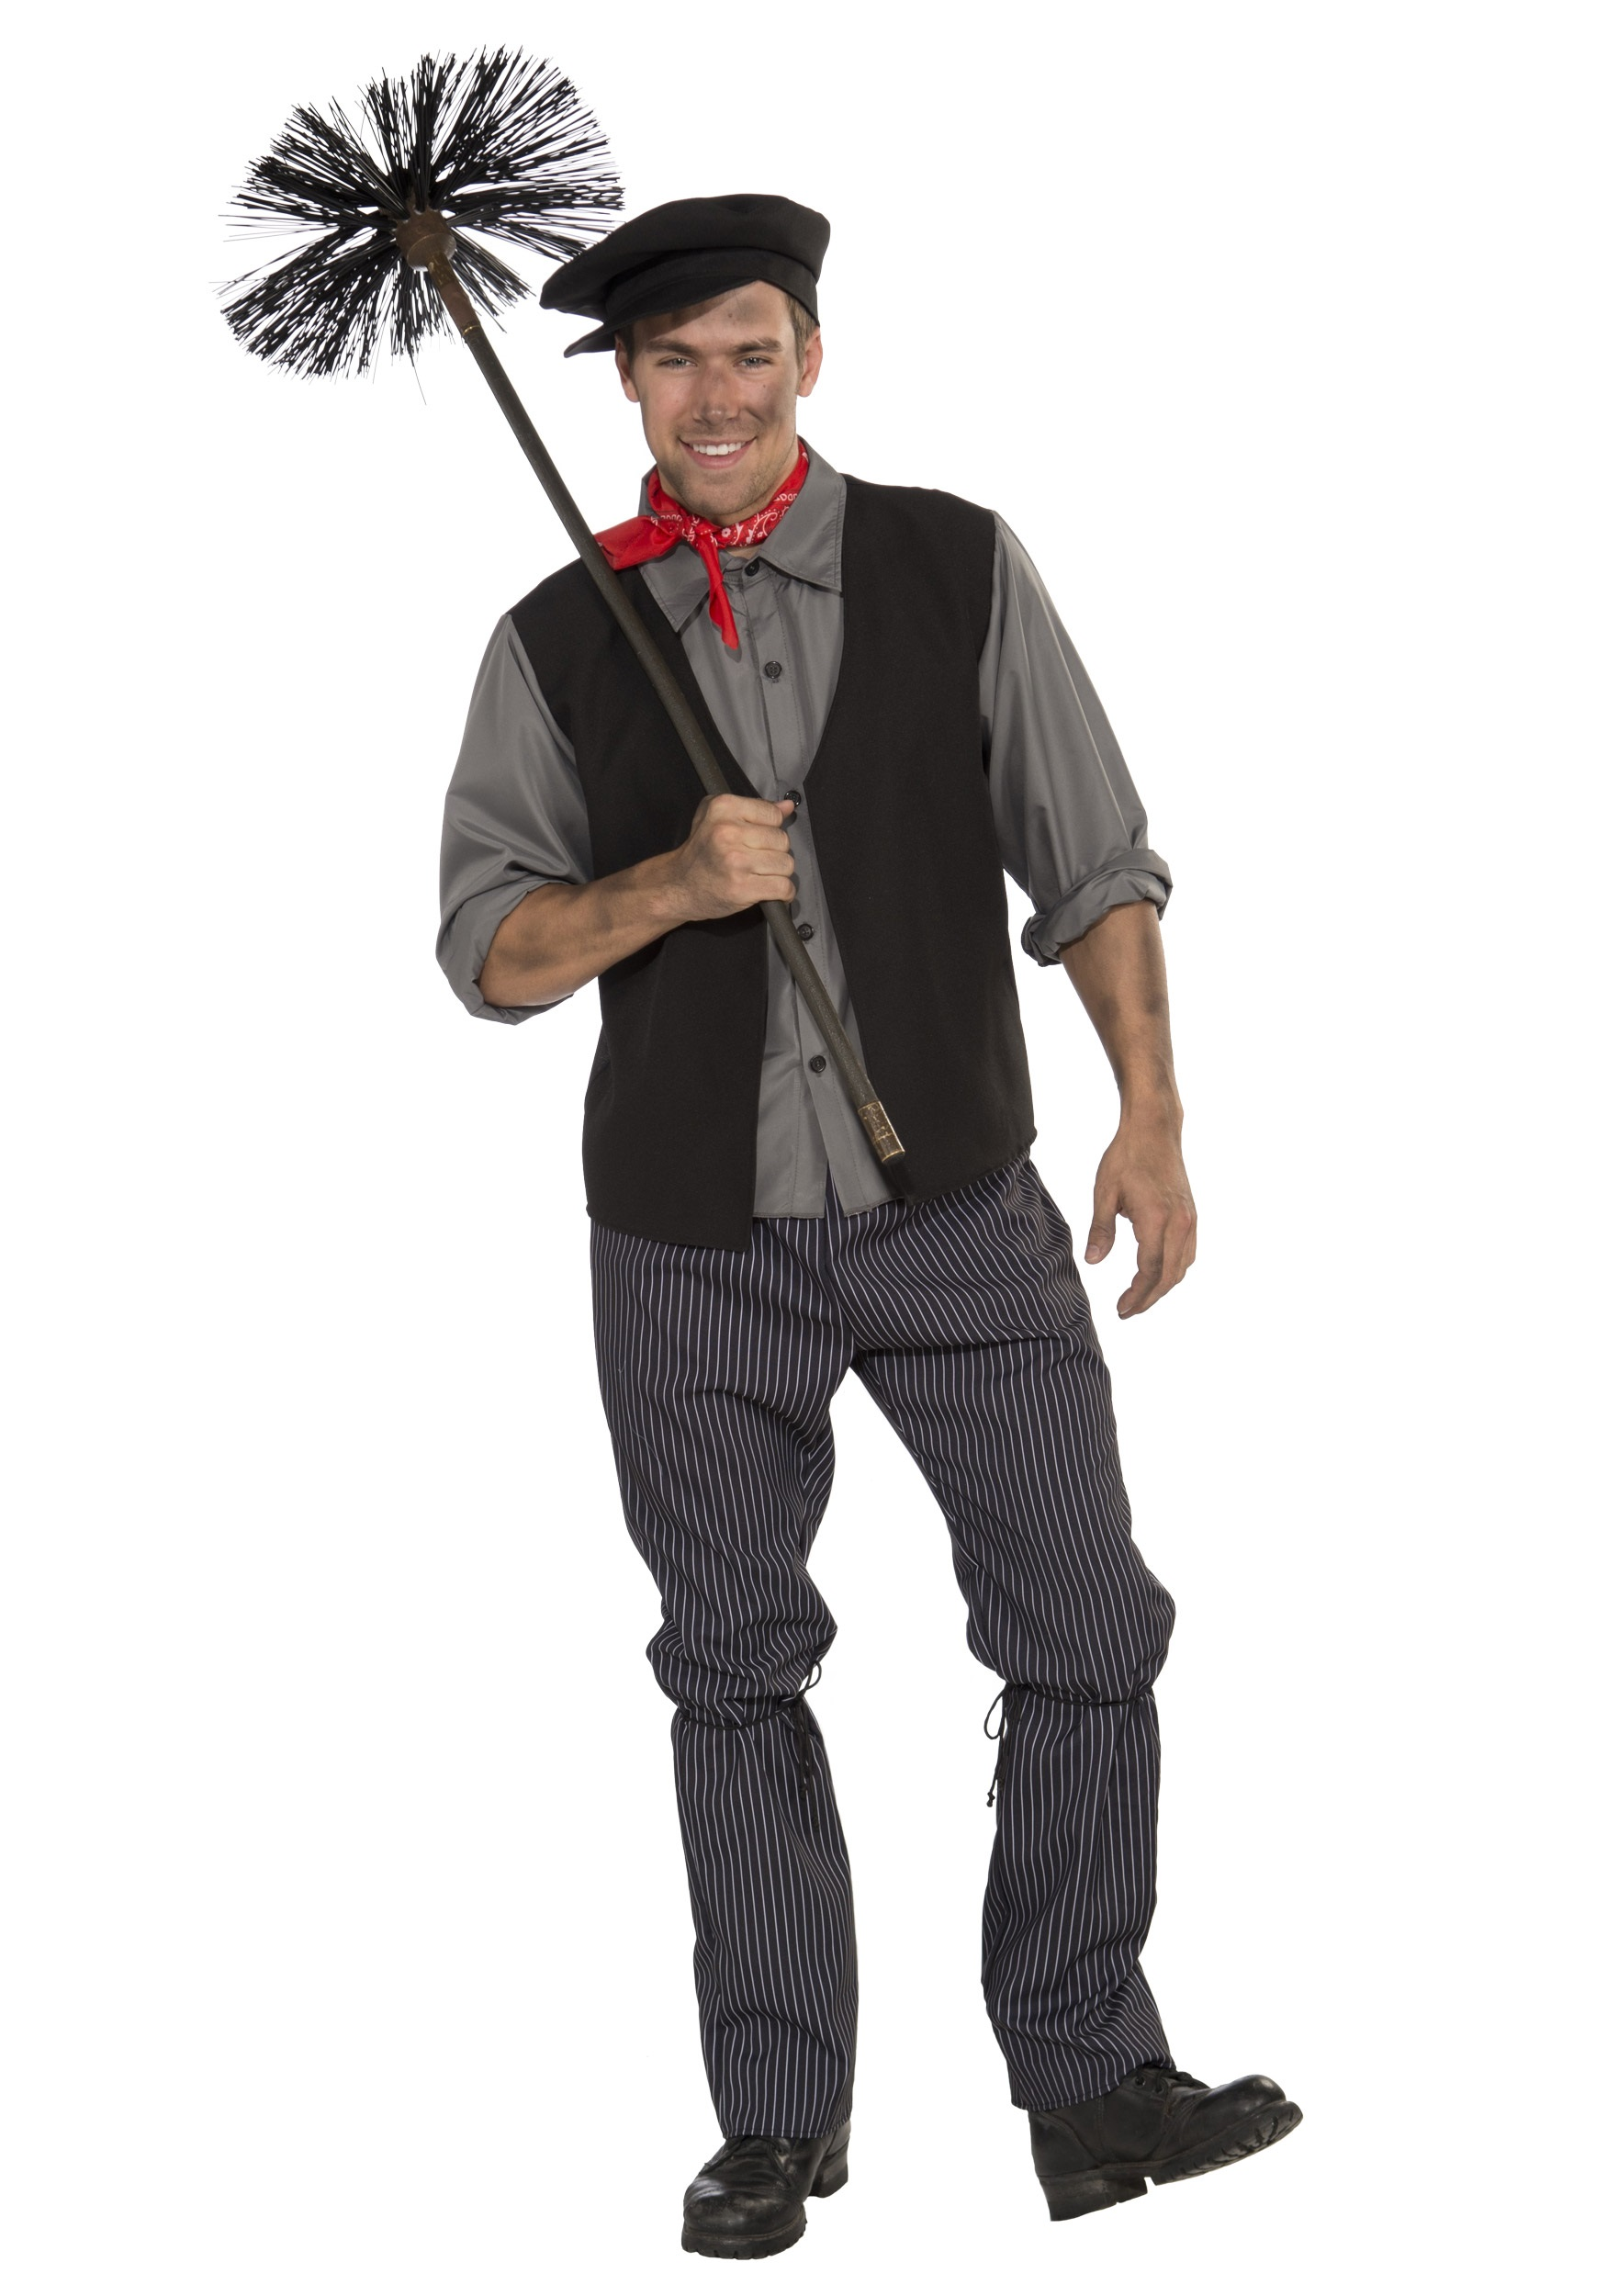 chimney sweep costume. Black Bedroom Furniture Sets. Home Design Ideas